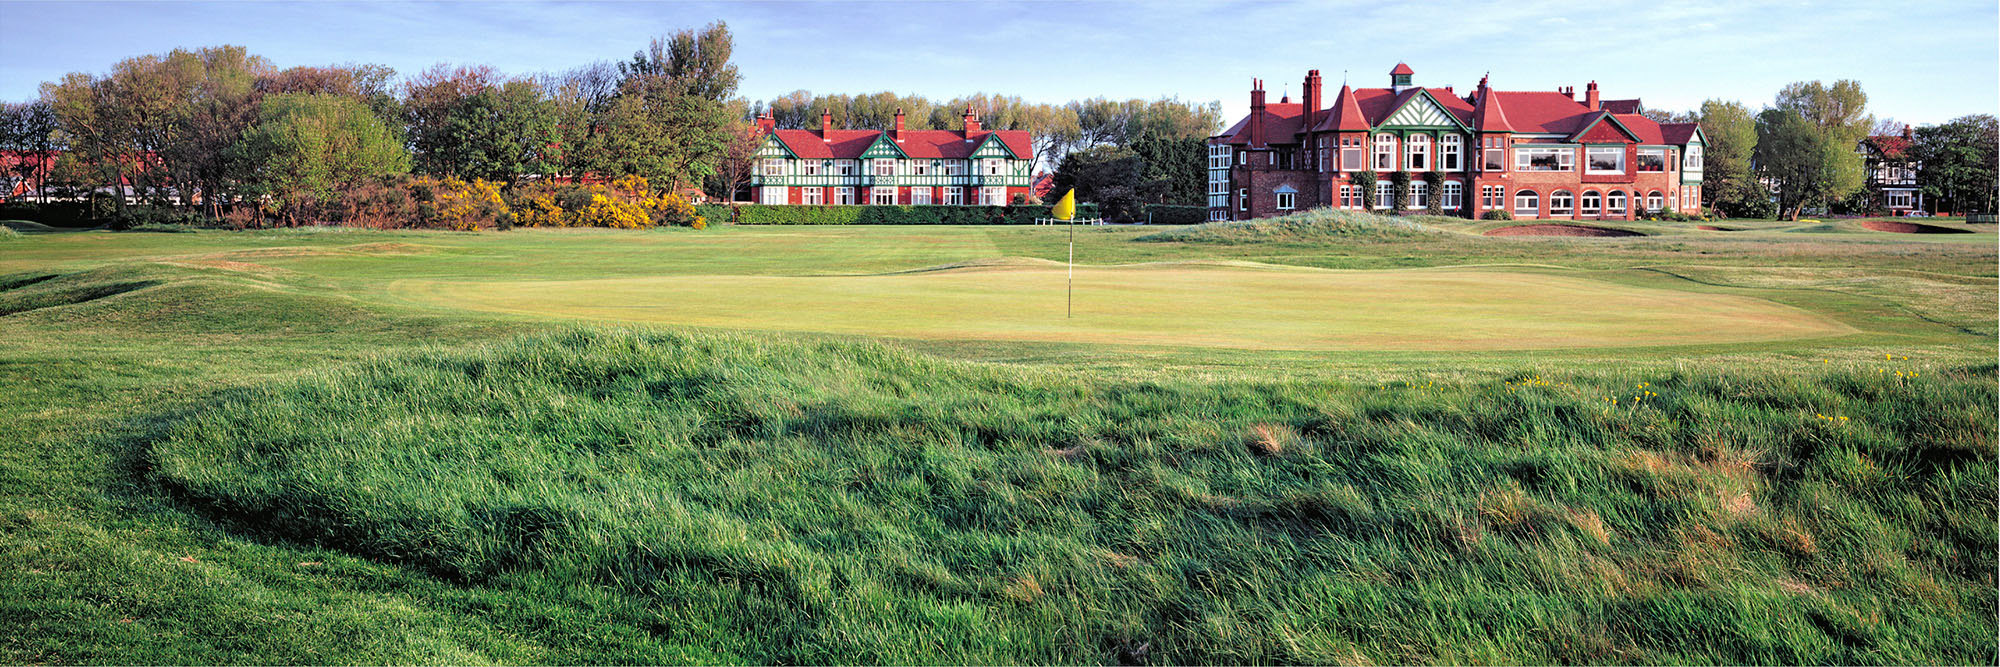 Golf Course Image - Royal Lytham and St. Anne's No. 1